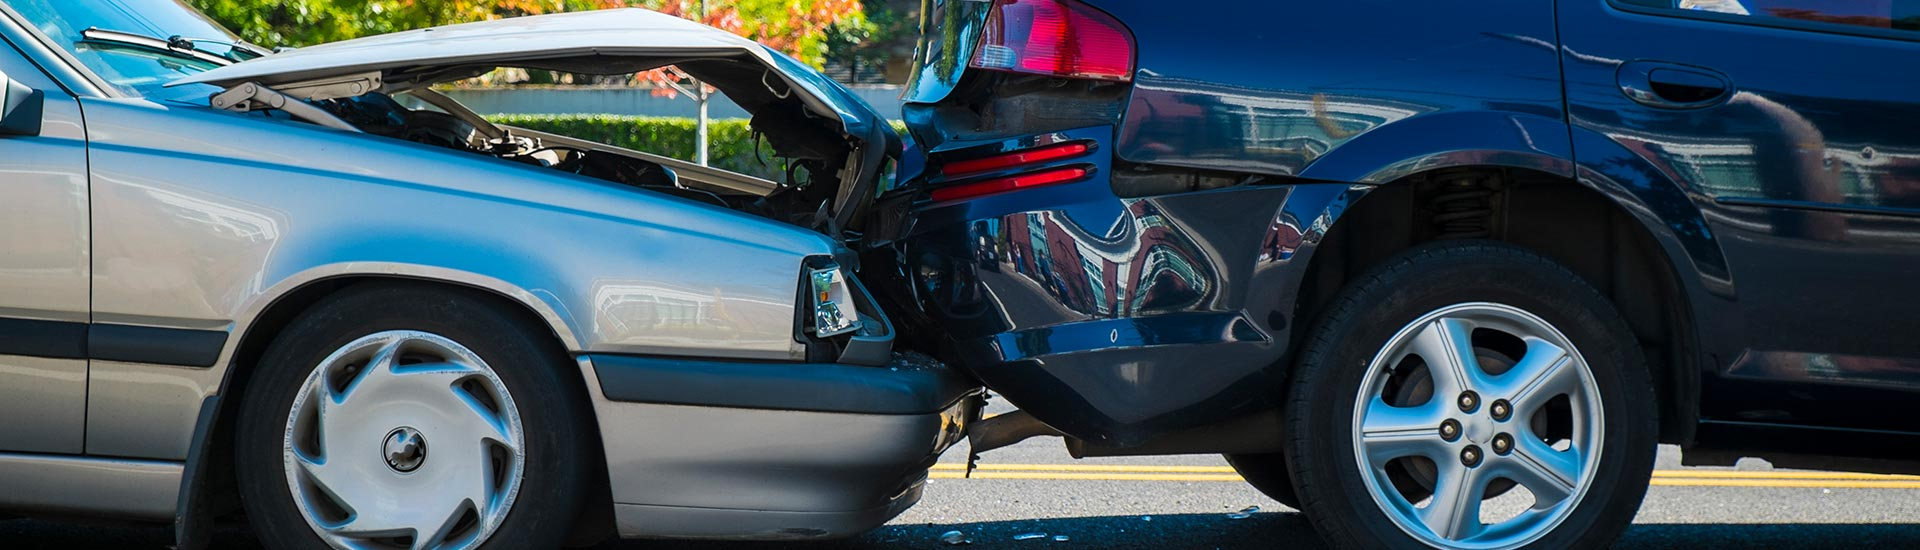 Auto Accident Treatments, Car Accident Doctor & Auto Injury